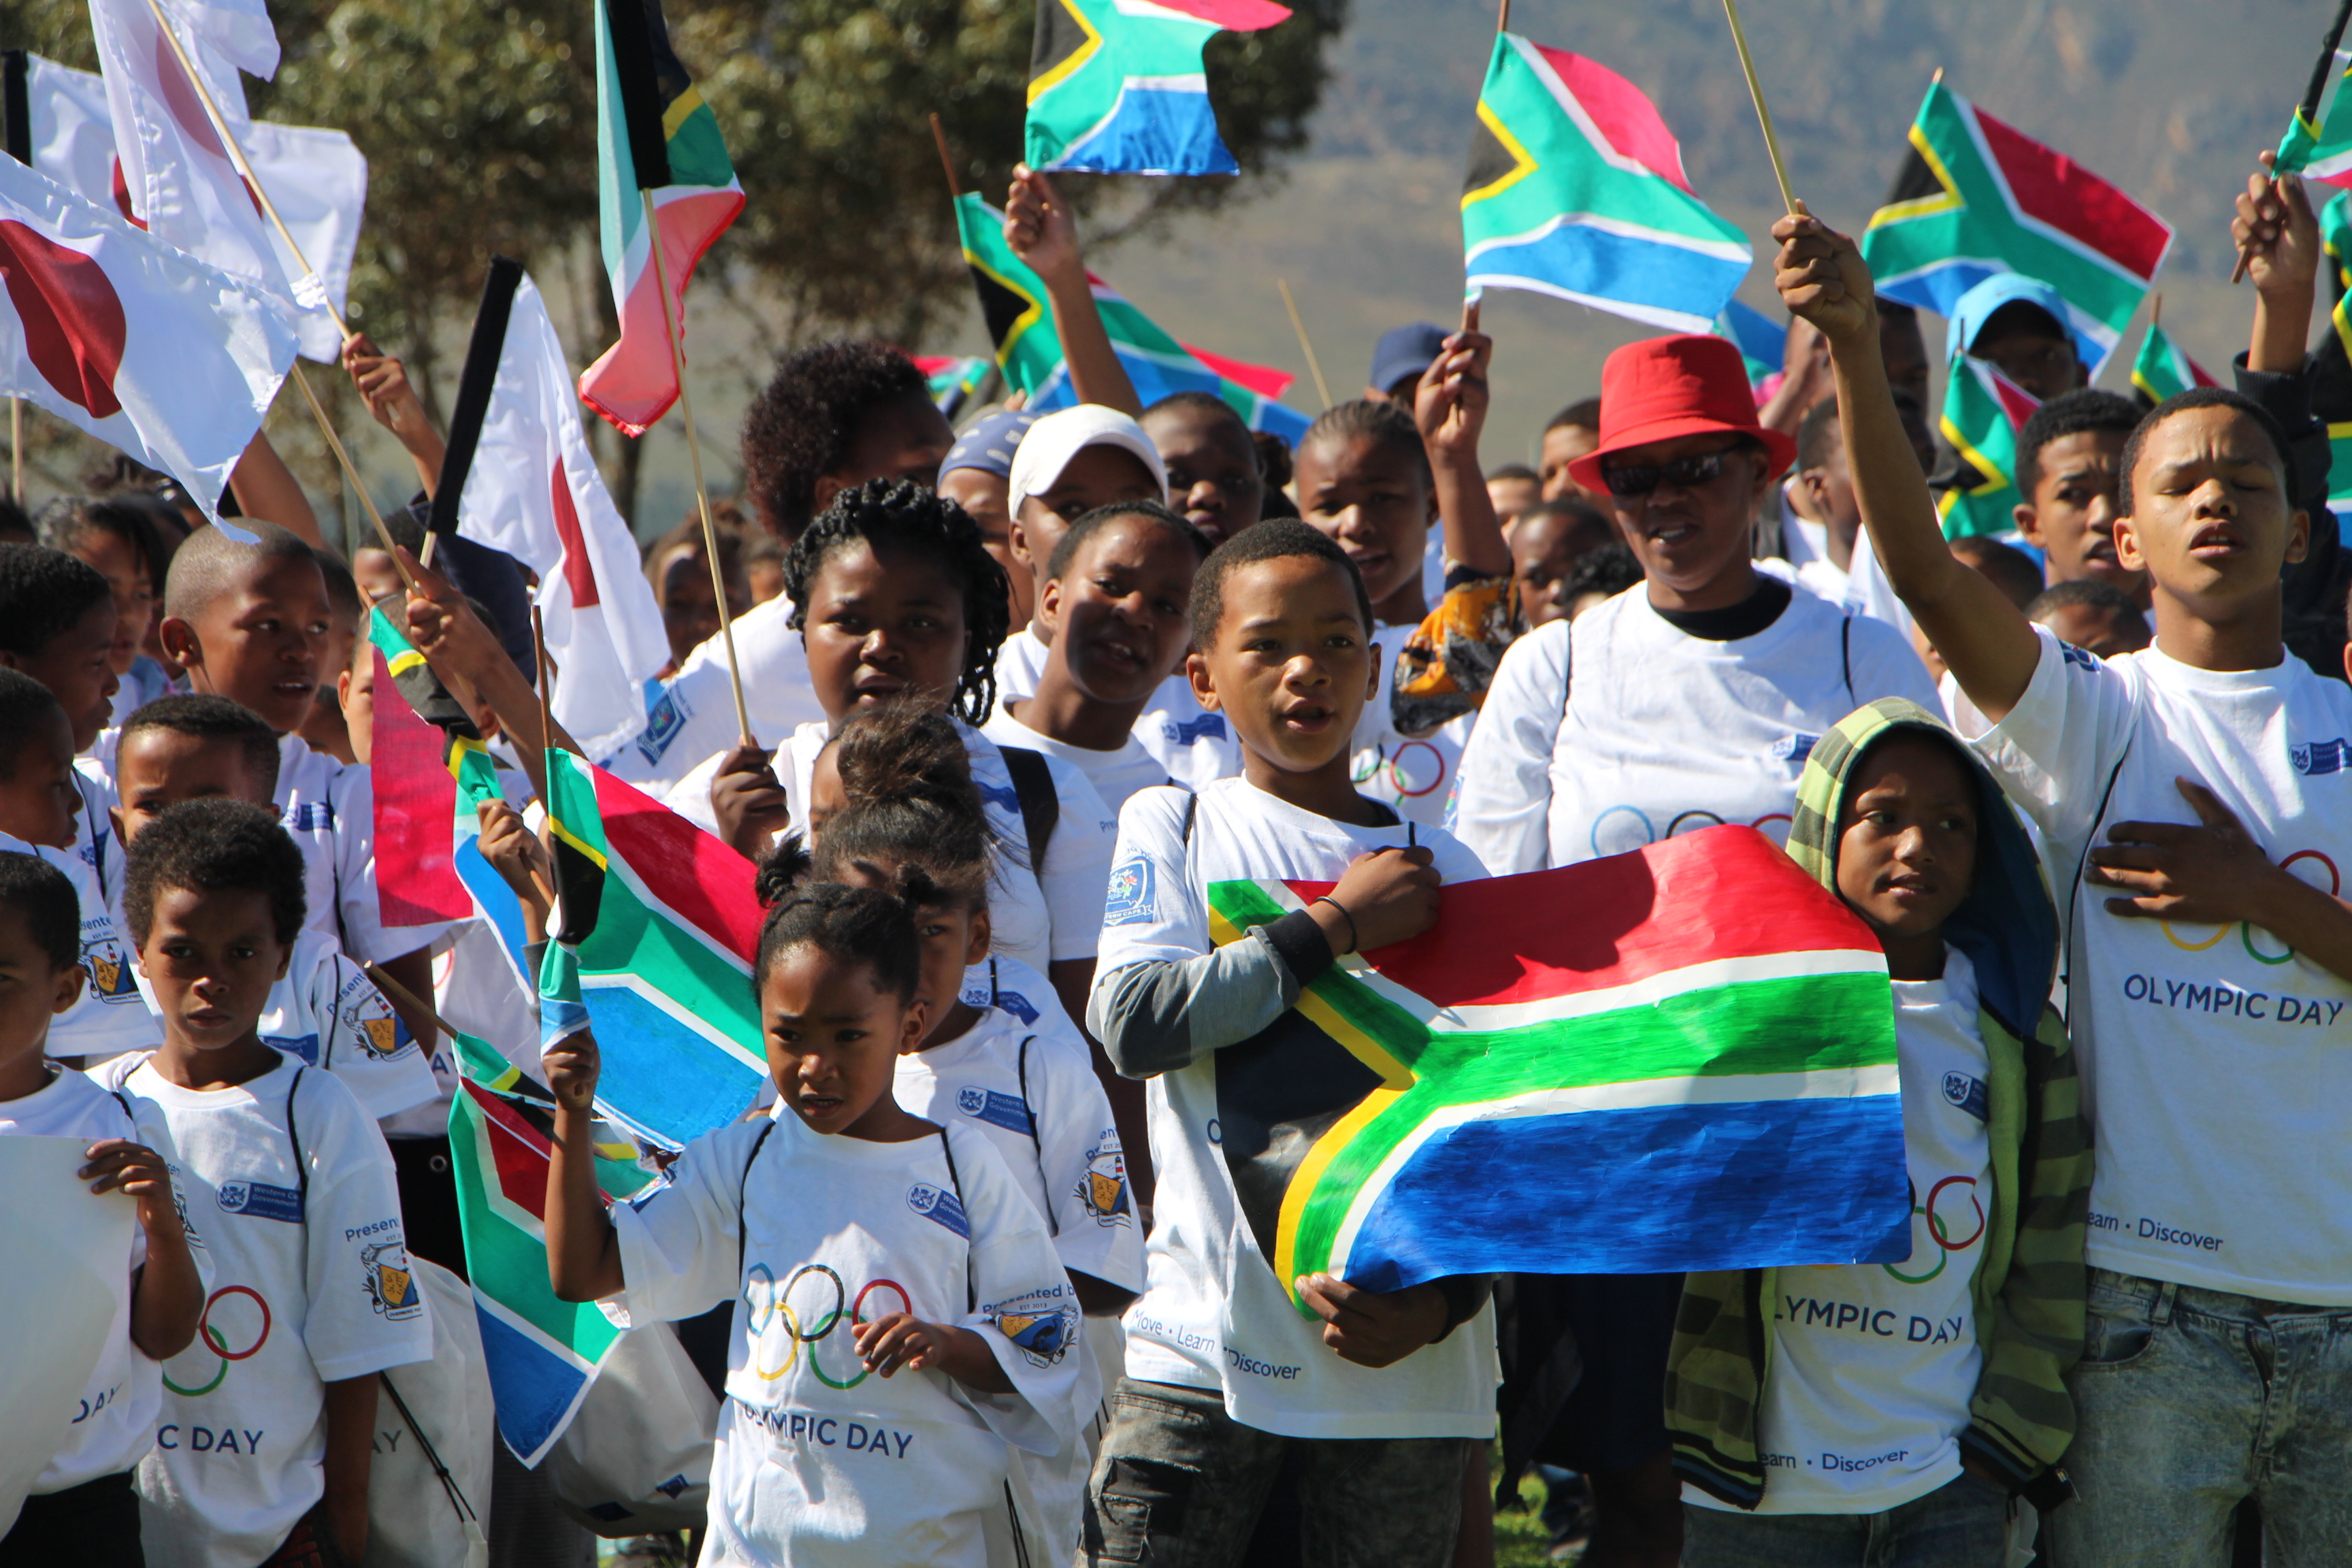 Kids representing South Africa at the 2019 Olympic Day